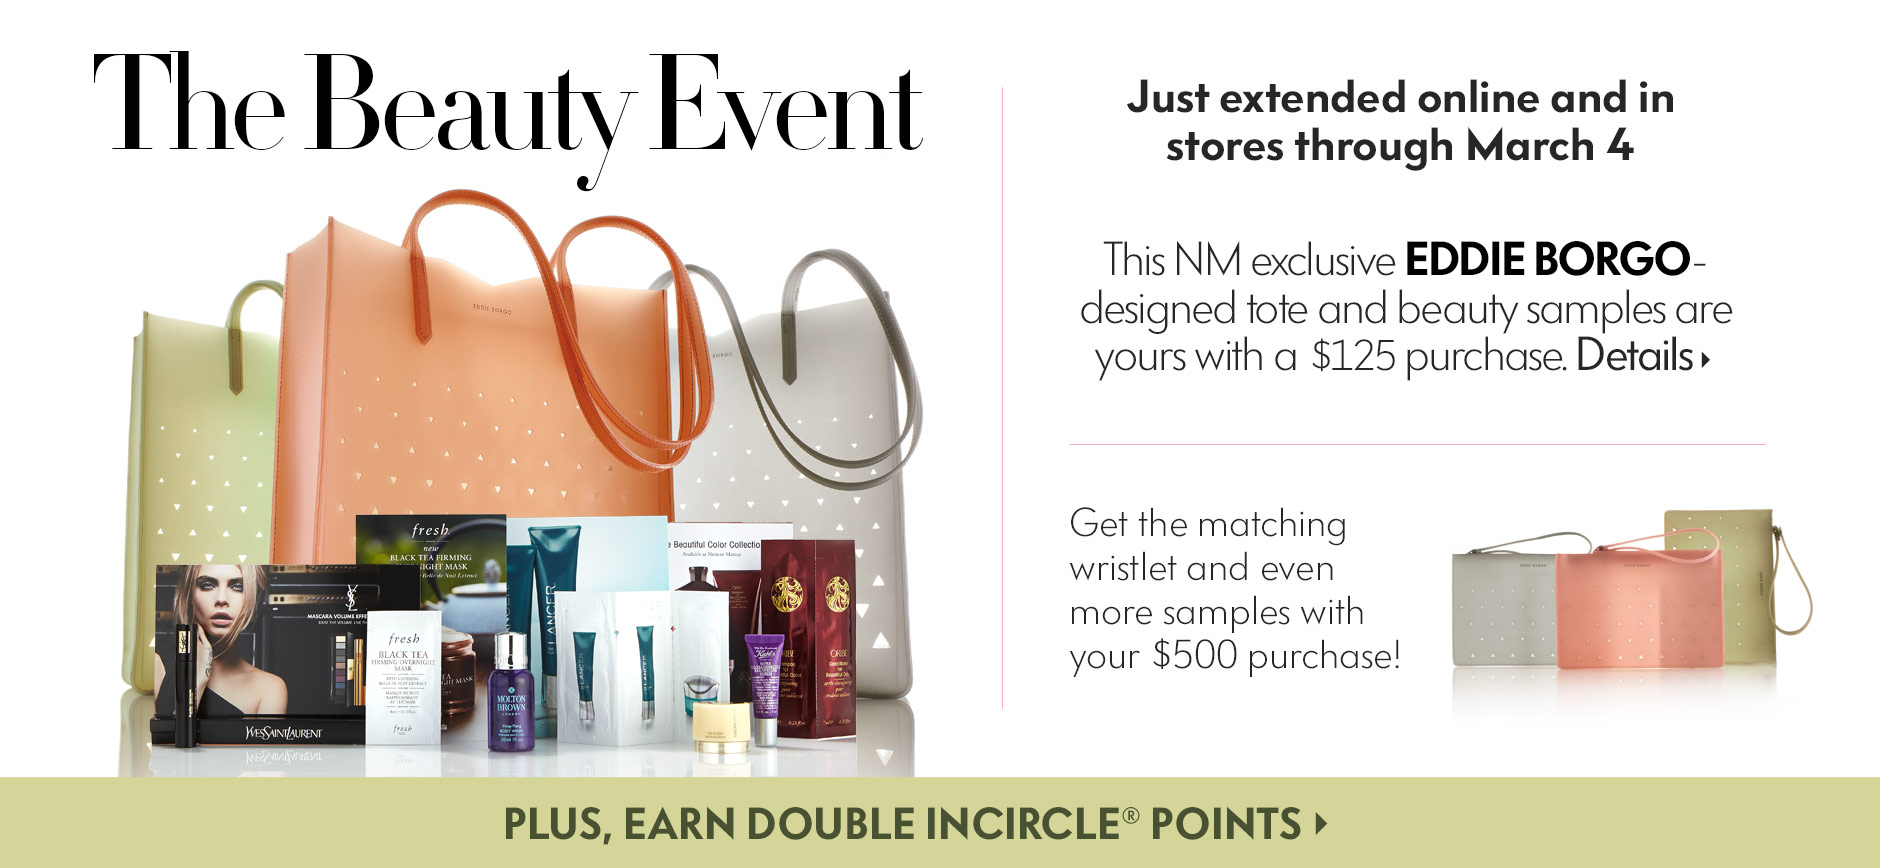 THE BEAUTY EVENT